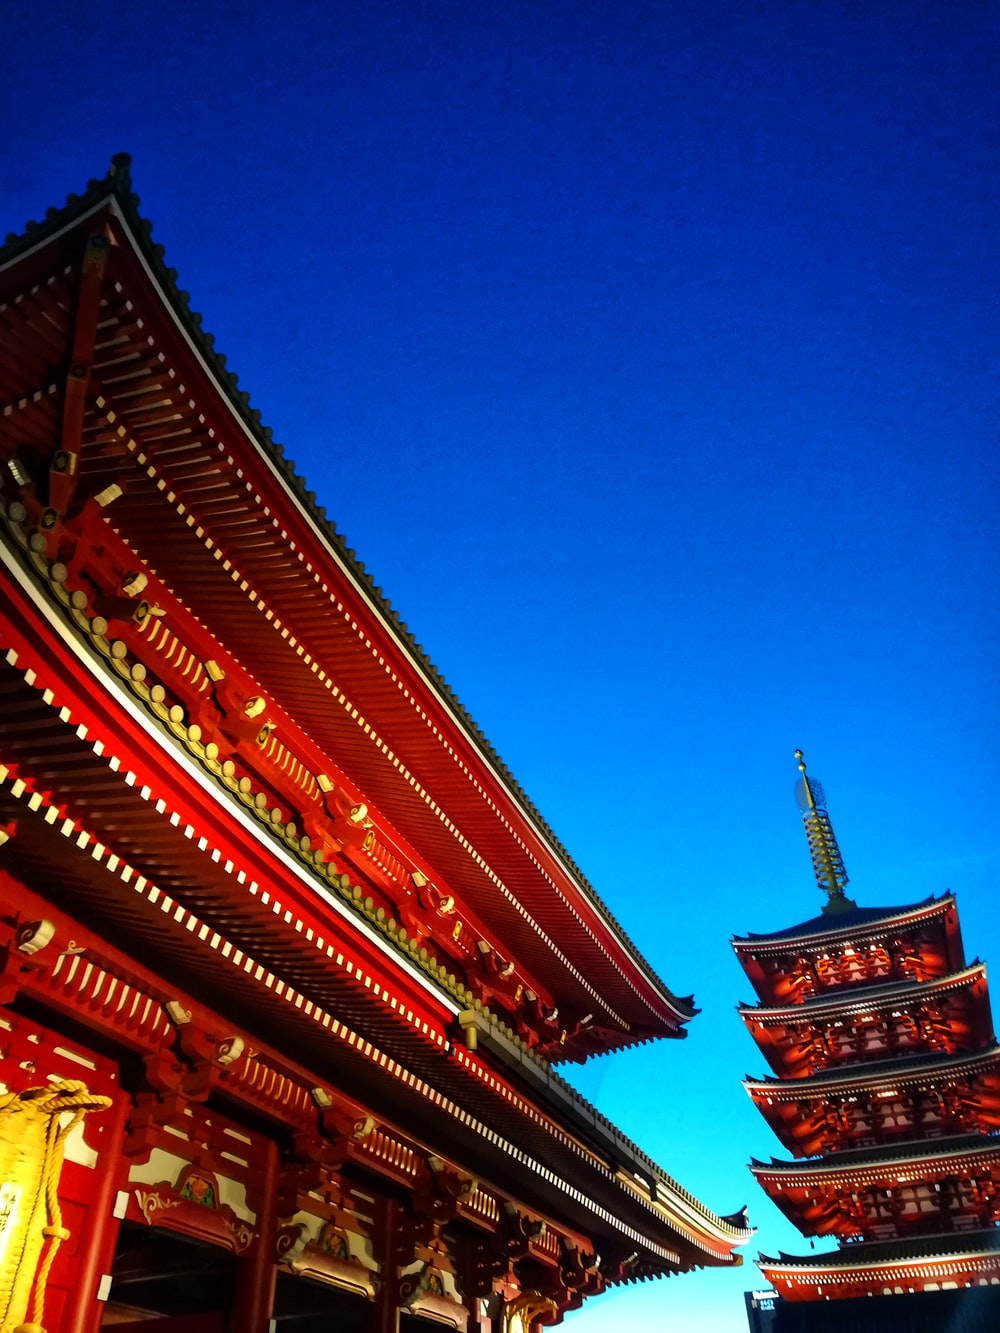 architectural photo of a temple in Asakusa at dusk